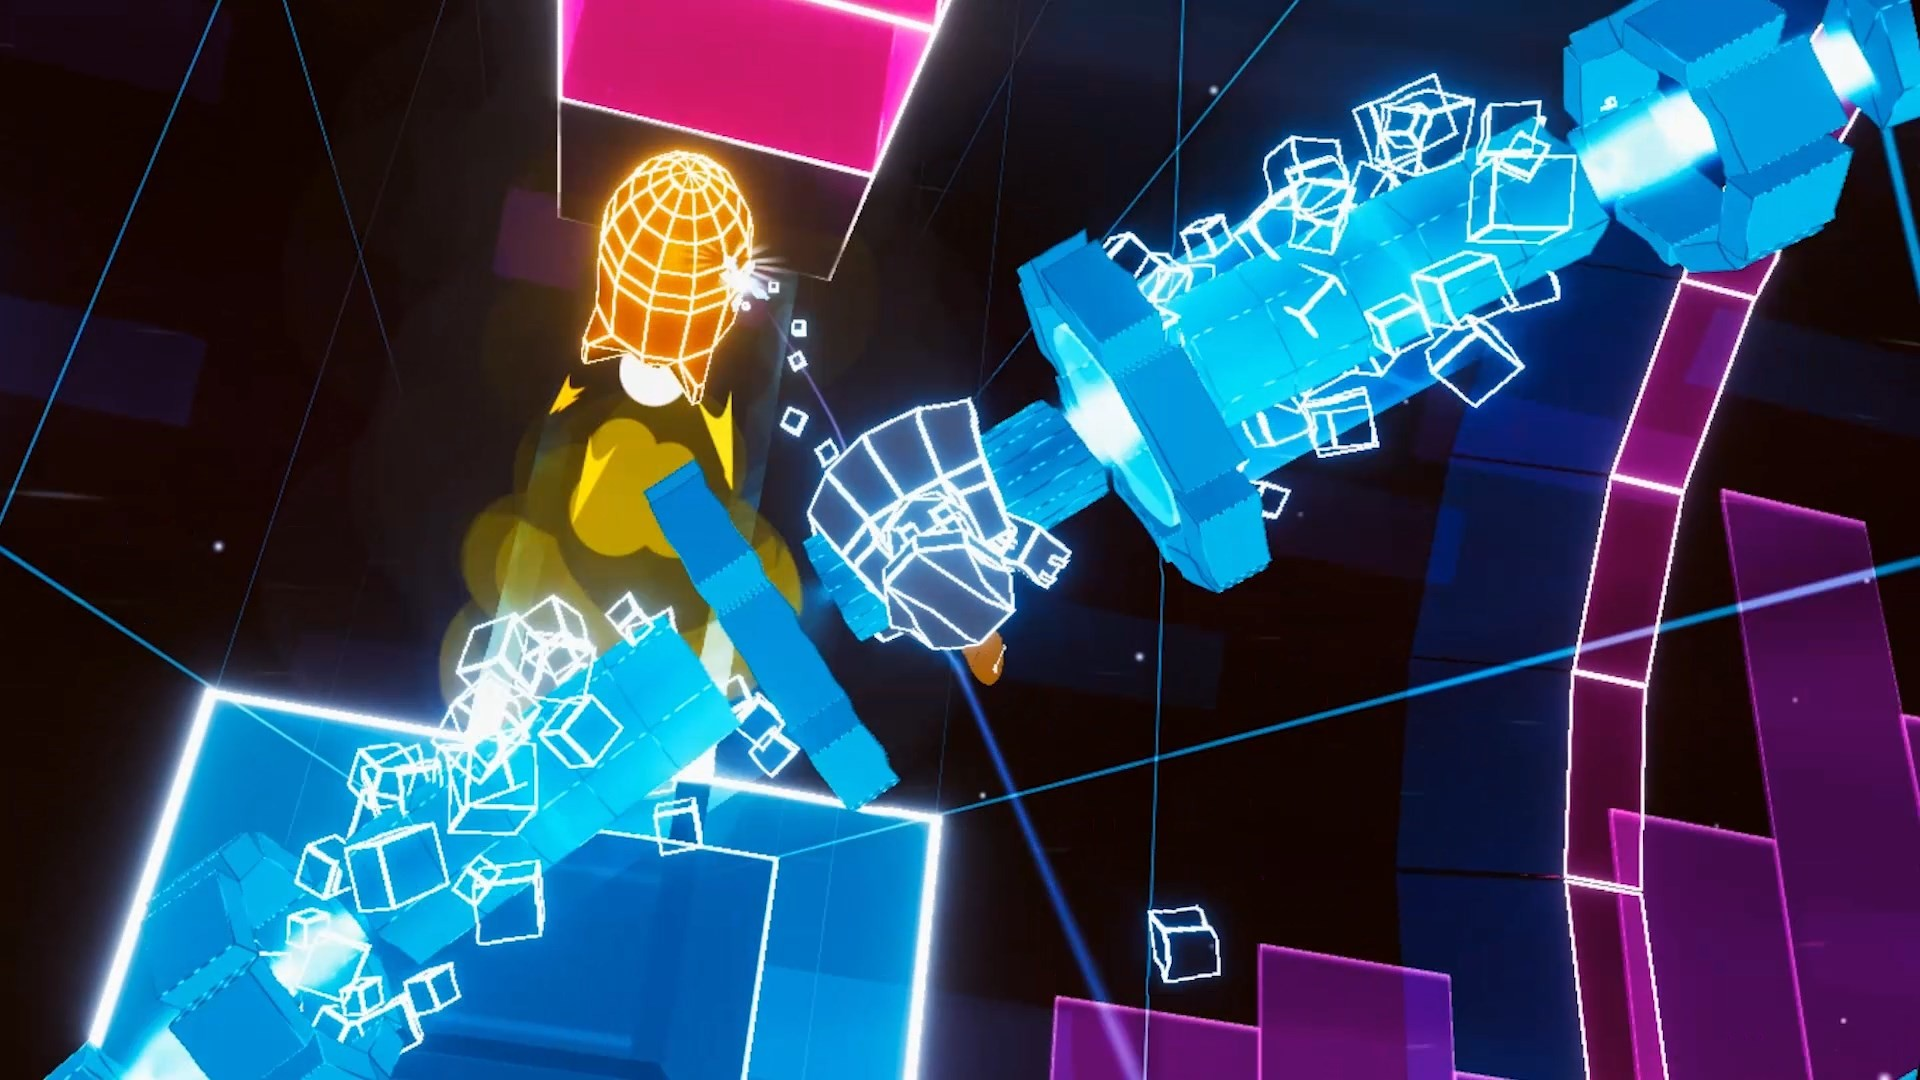 Play Against A PC Opponent In SMUSH.TV For Virtual Reality